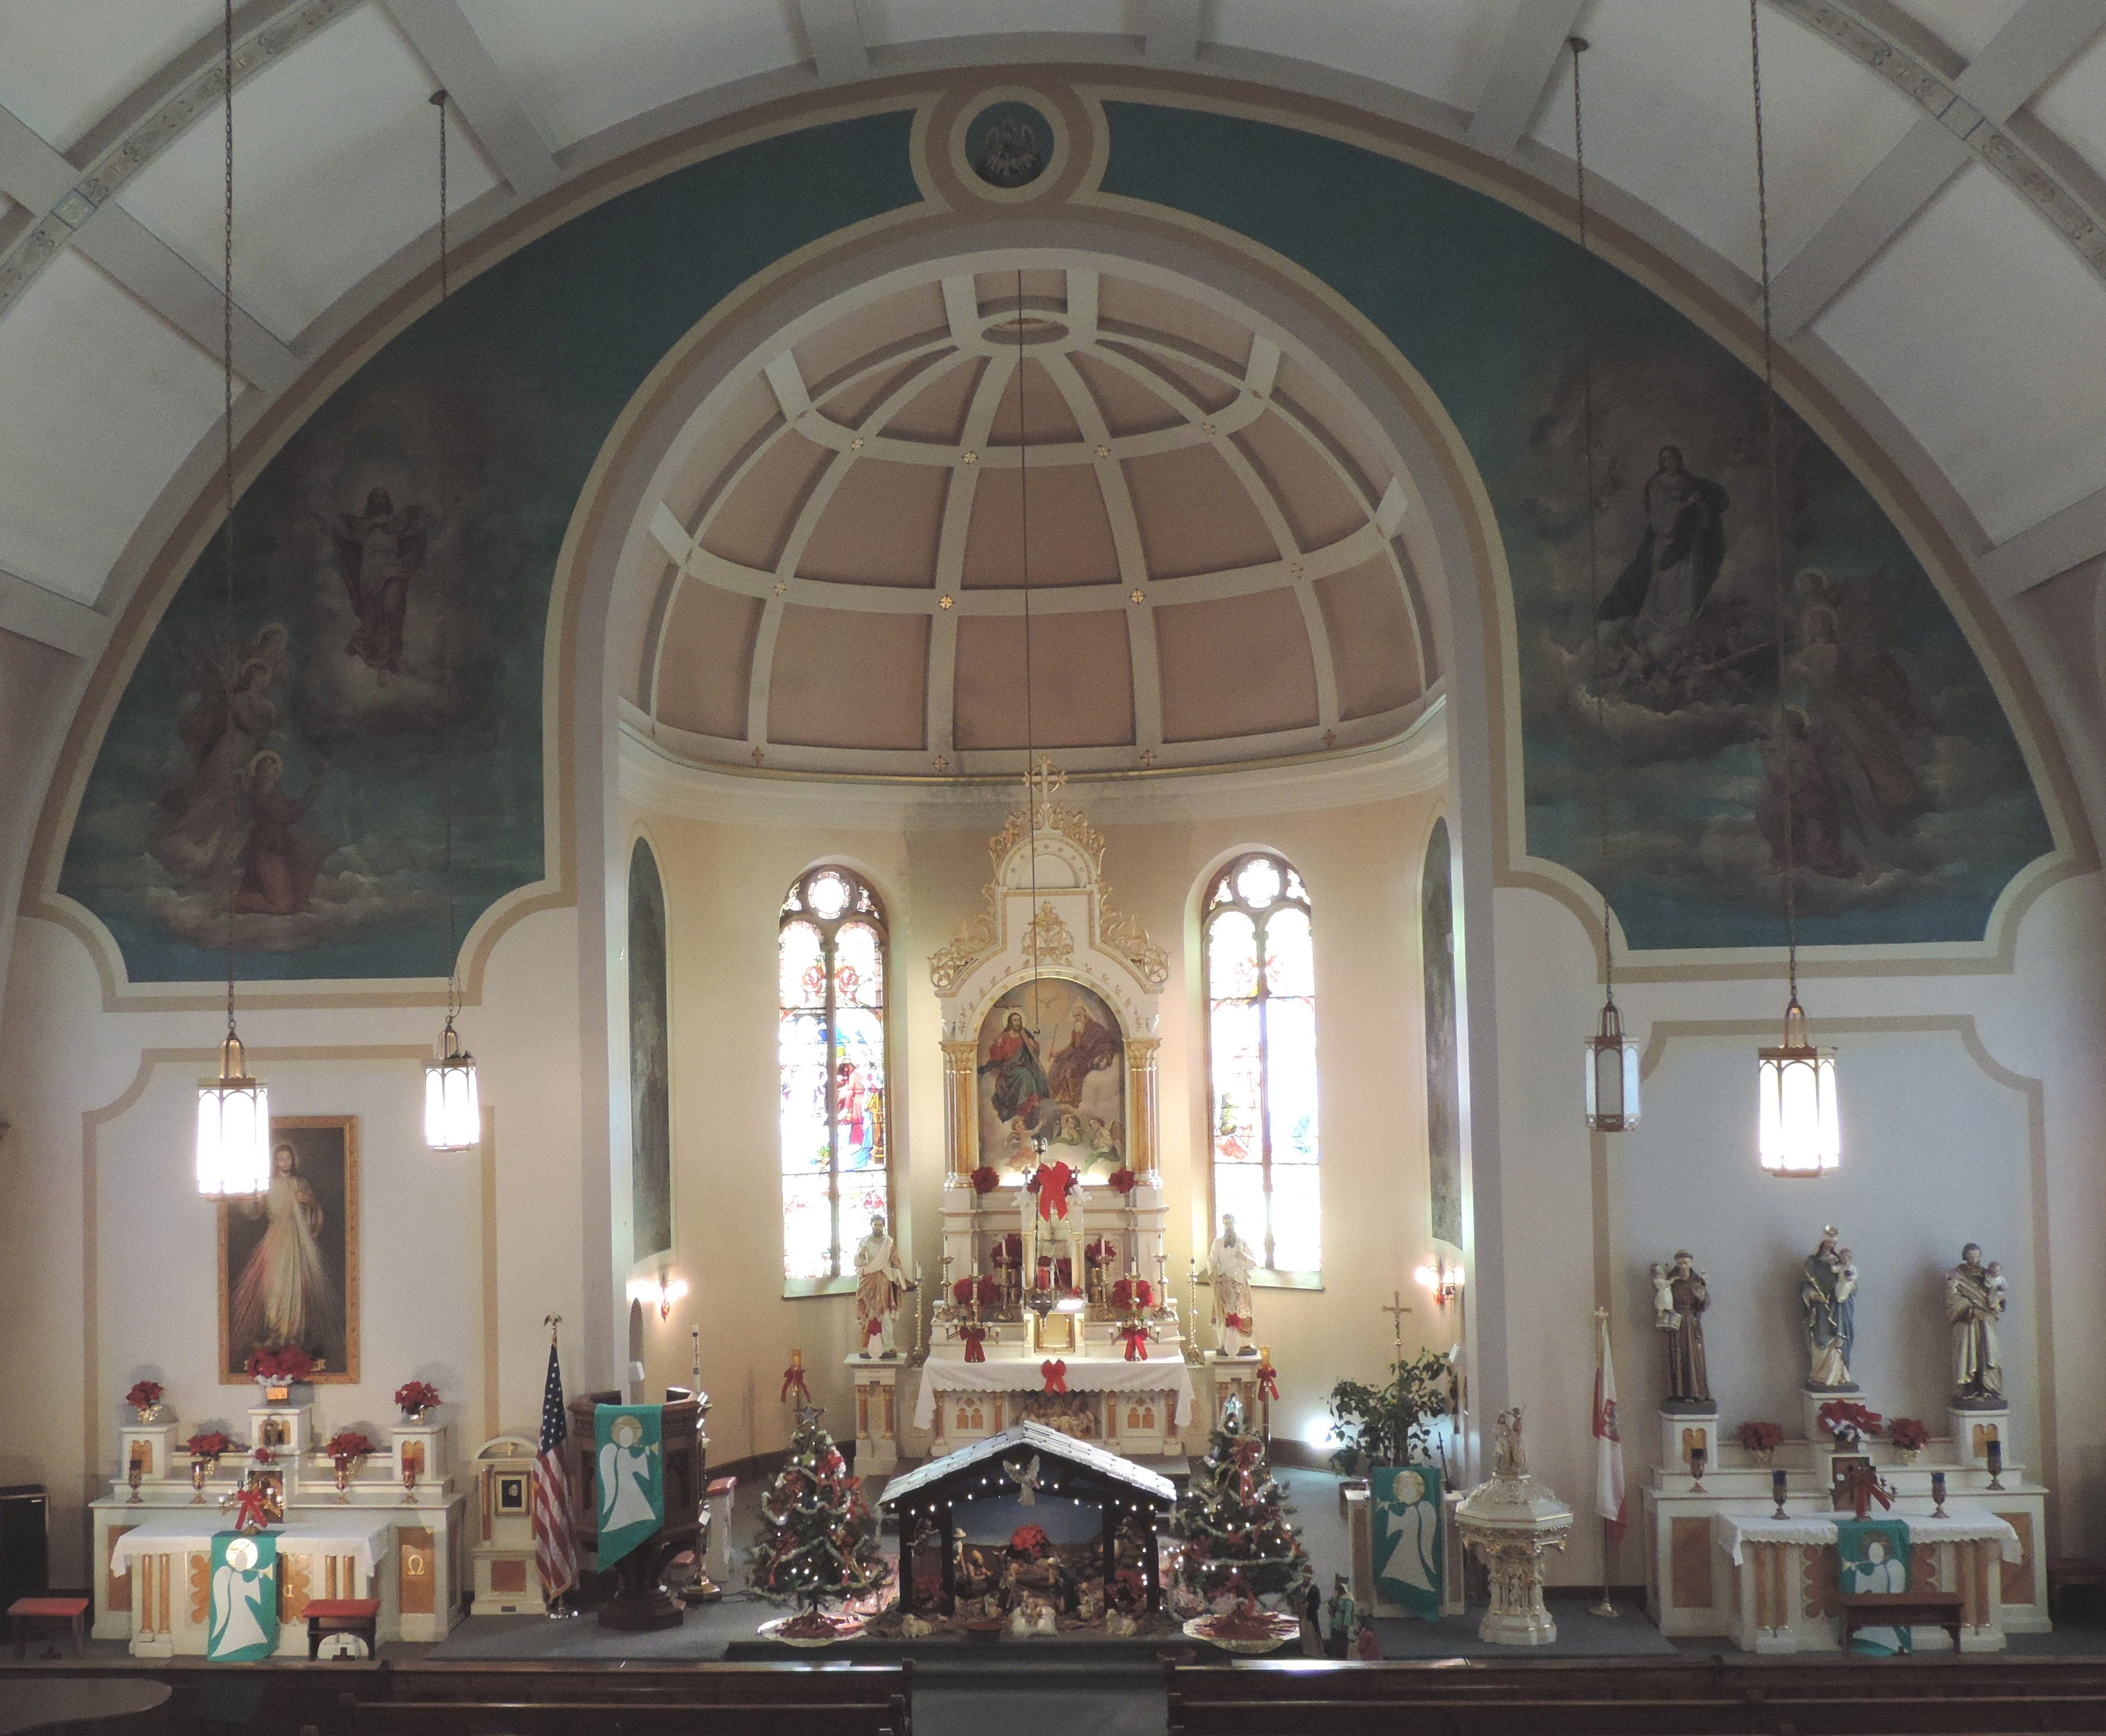 Historic Holy Trinity Church is decorated for Christmas, displaying several Christmas pieces that date back to the early 1900s.